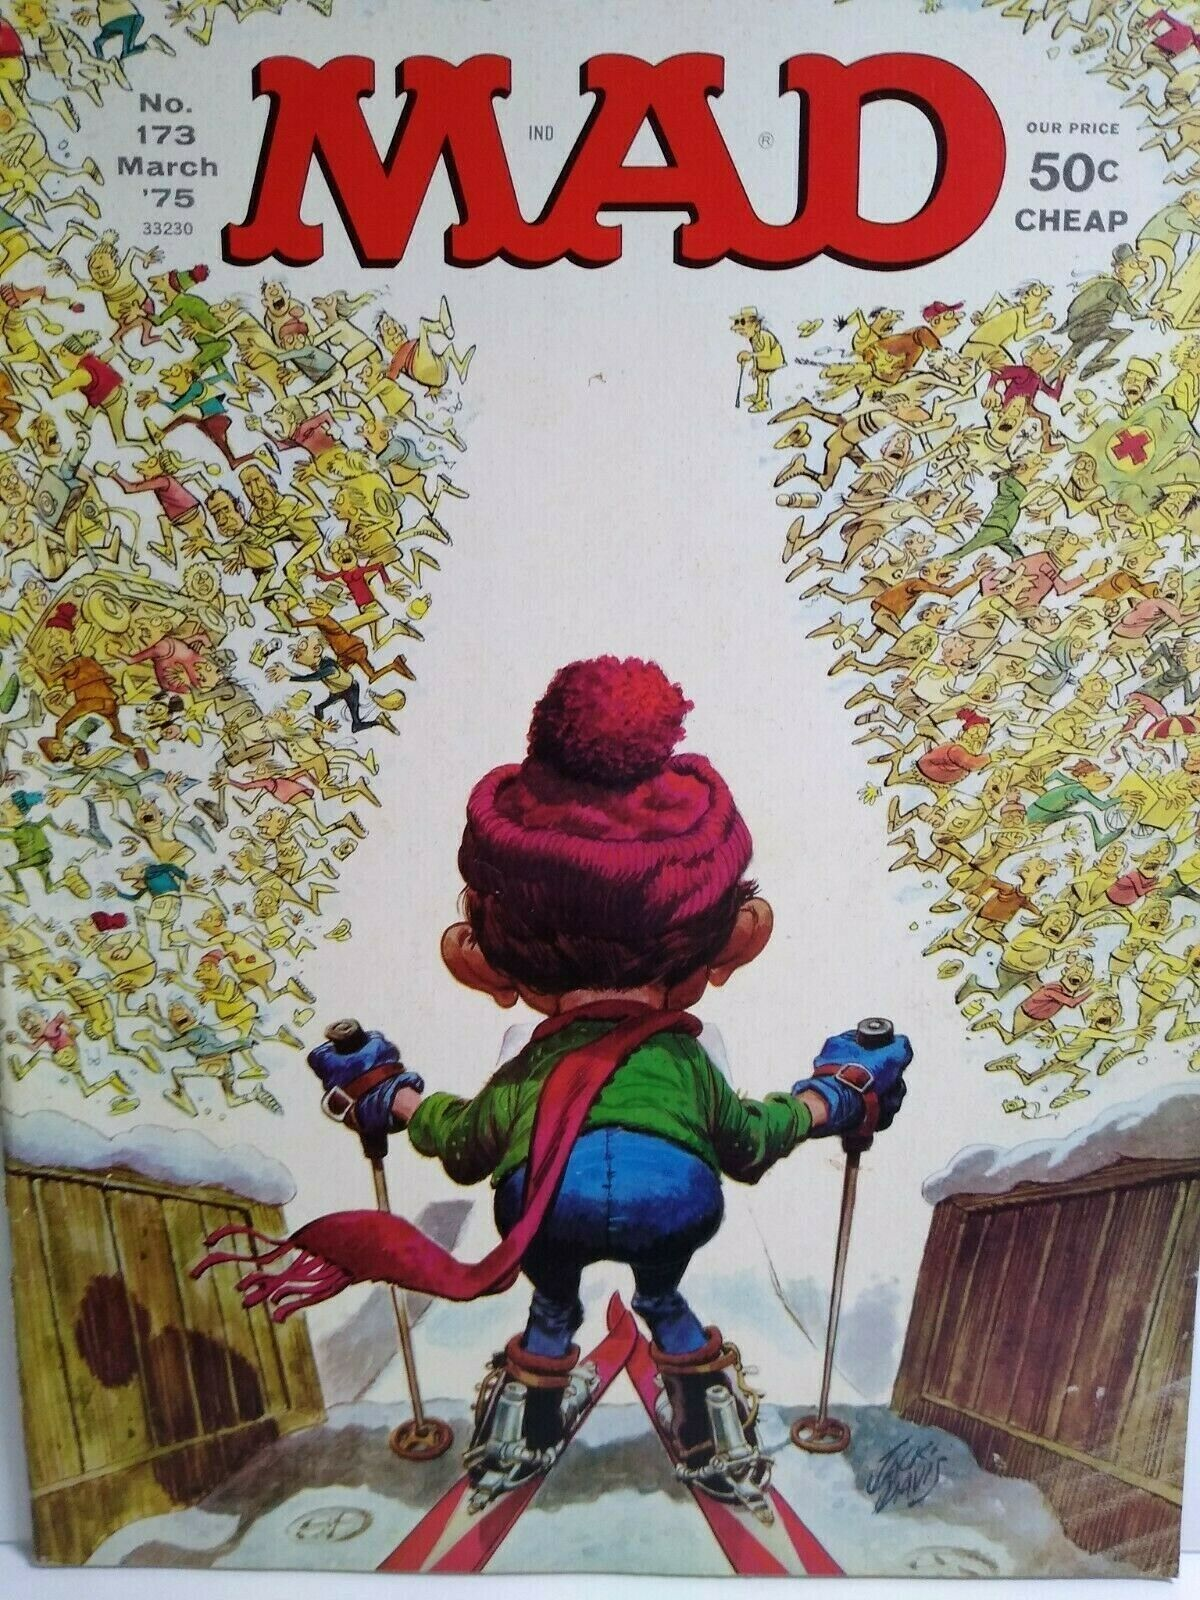 MAD Magazine March 1975 No 173 Alfred Skiing Down Slope Cover Comic Gift For Dad - $13.76